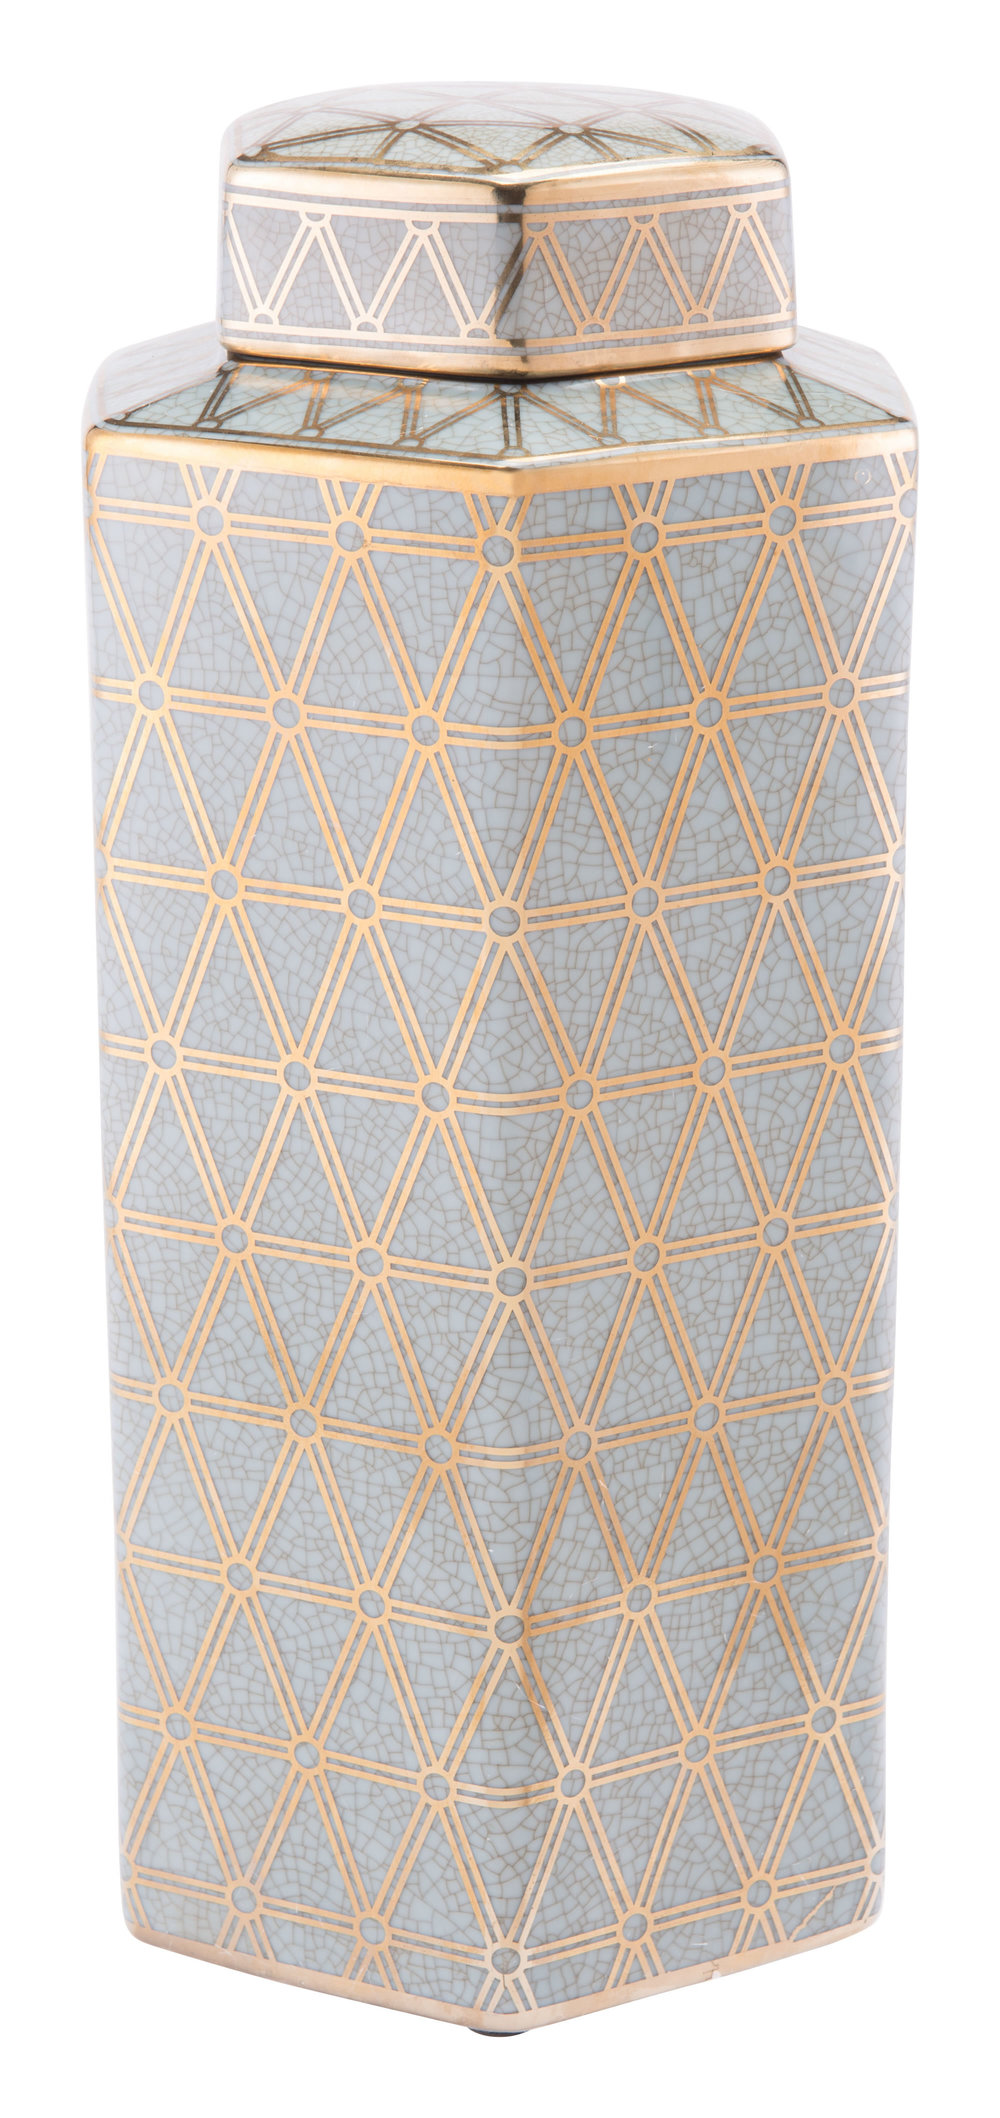 Zuo Modern Contemporary - Large Link Covered Jar Gold And Blue